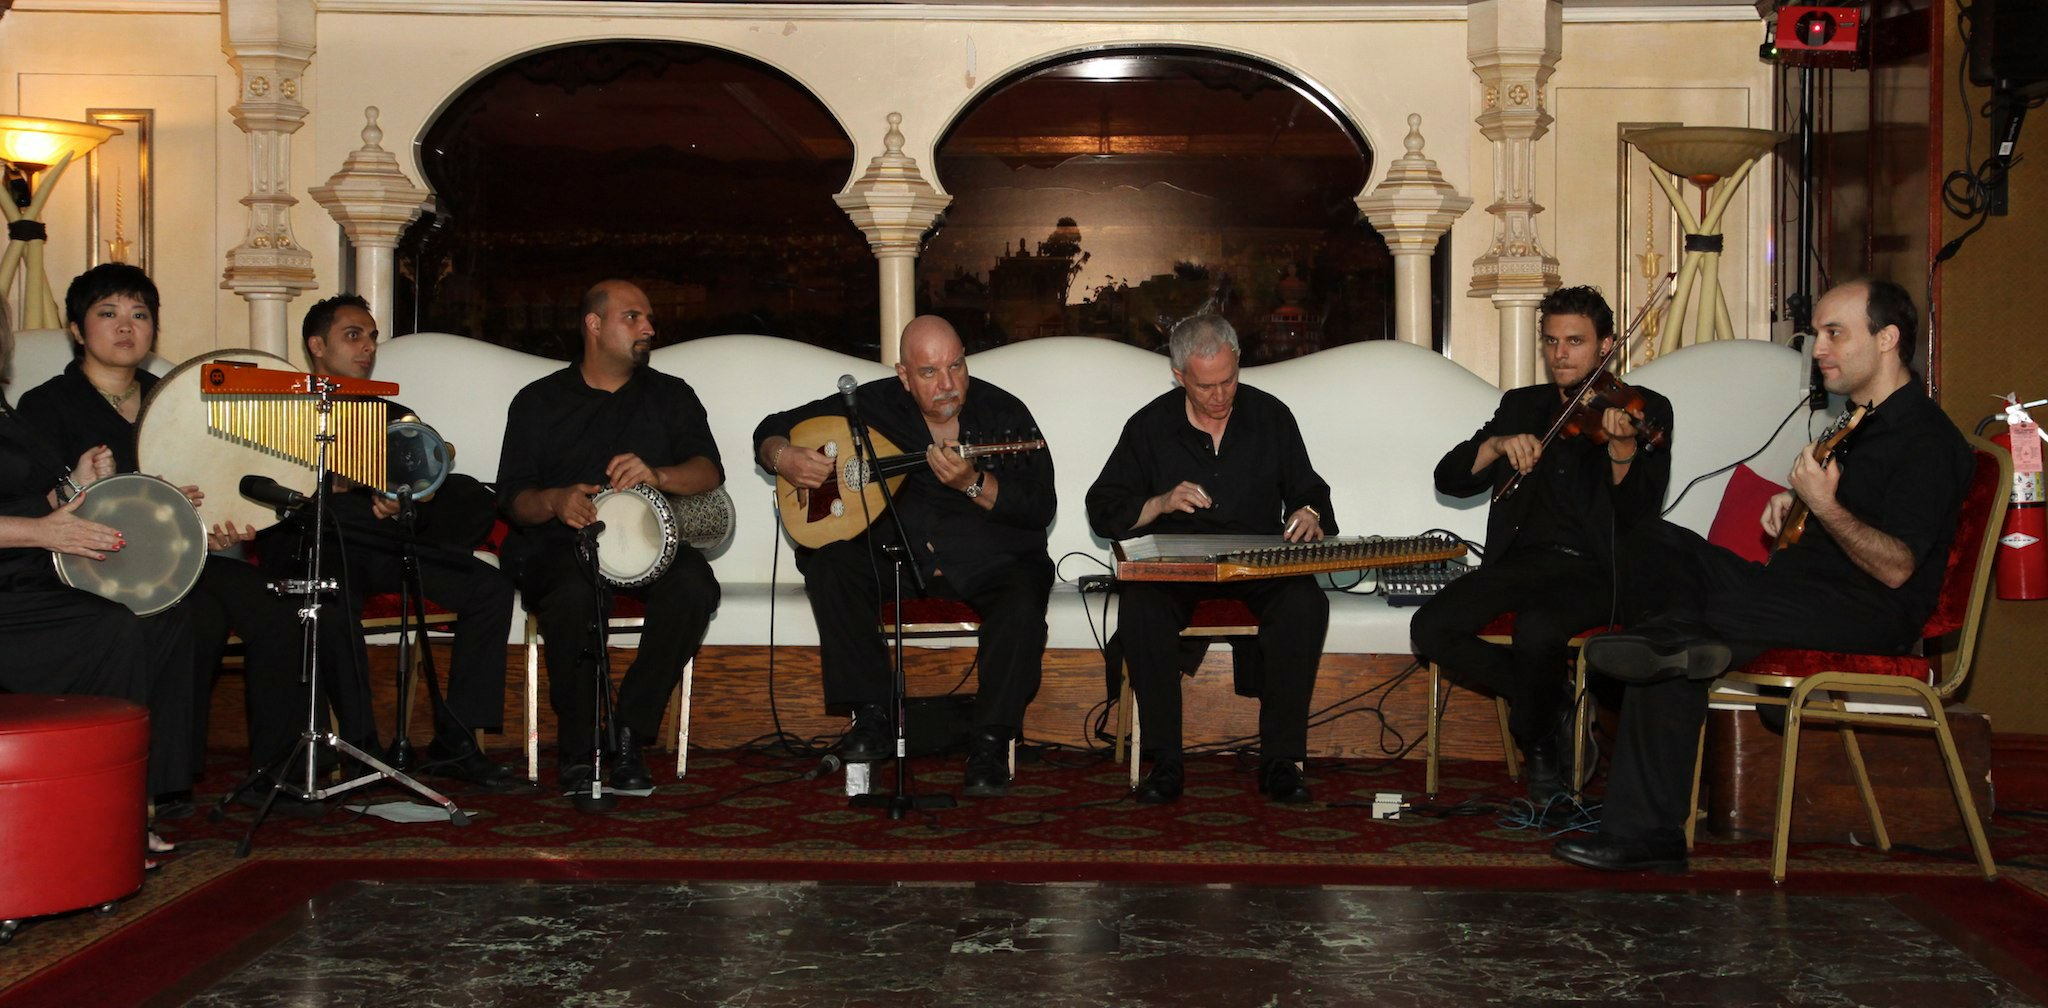 Jerry Bezdikian Ensemble at Kama Sutra